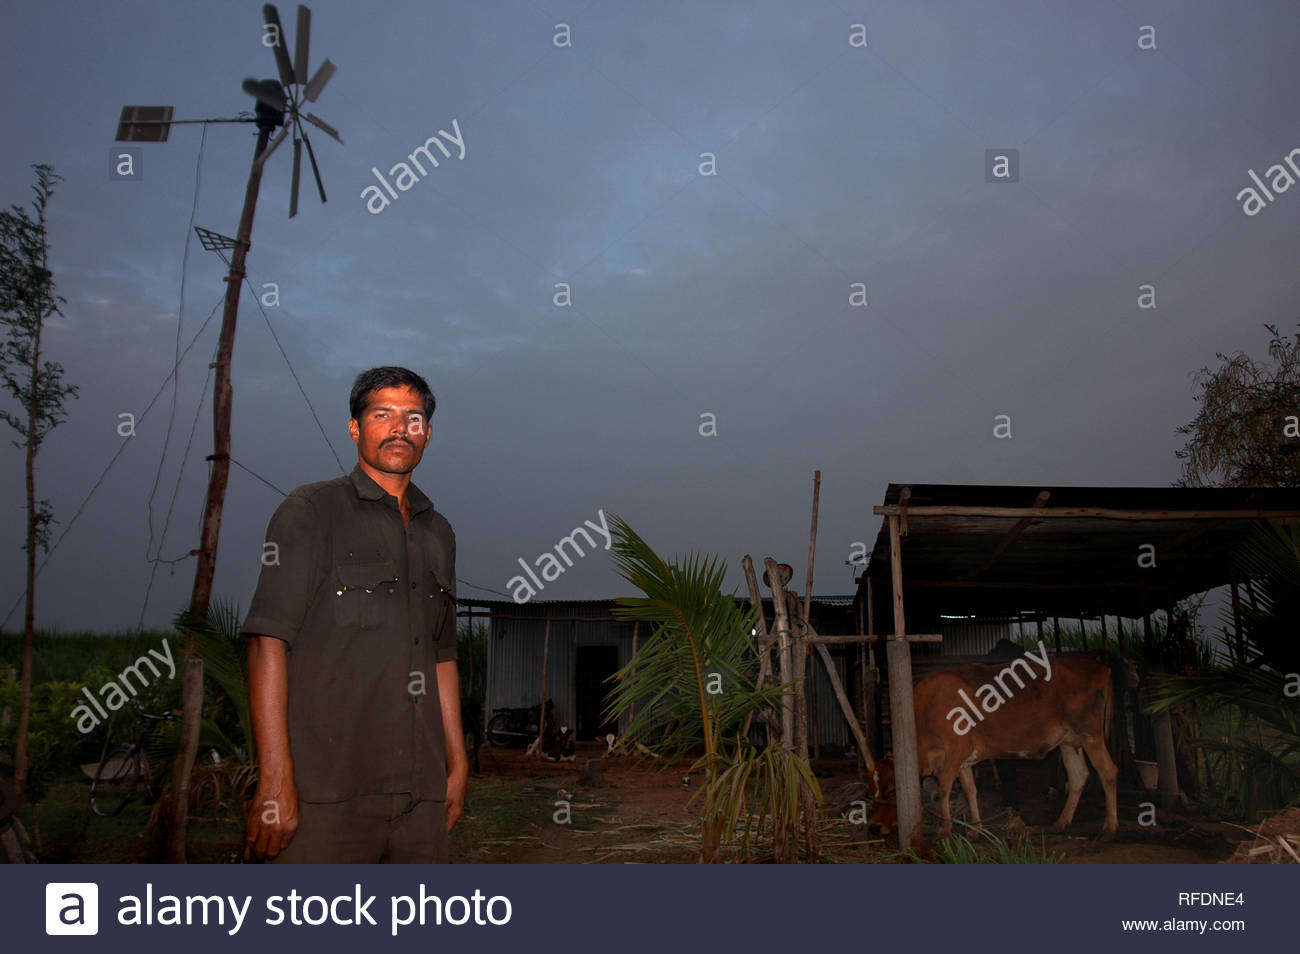 """Automobile mechanic Ashok Awati stands before his indigenously designed windmill, at his village on the outskirts of Sangli, Maharashtra, India on May 8, 2013. At being told by the electricity department that he could get power to his home only if he could pay for erecting electric poles, Ashok Awati went ahead and designed his own windmill to generate power to light up his house consisting of 8 members of his family. Currently he generates electricity enough to run a television set, a DVD player and five bulbs to light up his residence. """"I spent about Rs 20,000 for parts like the gear box, ma - Stock Image"""